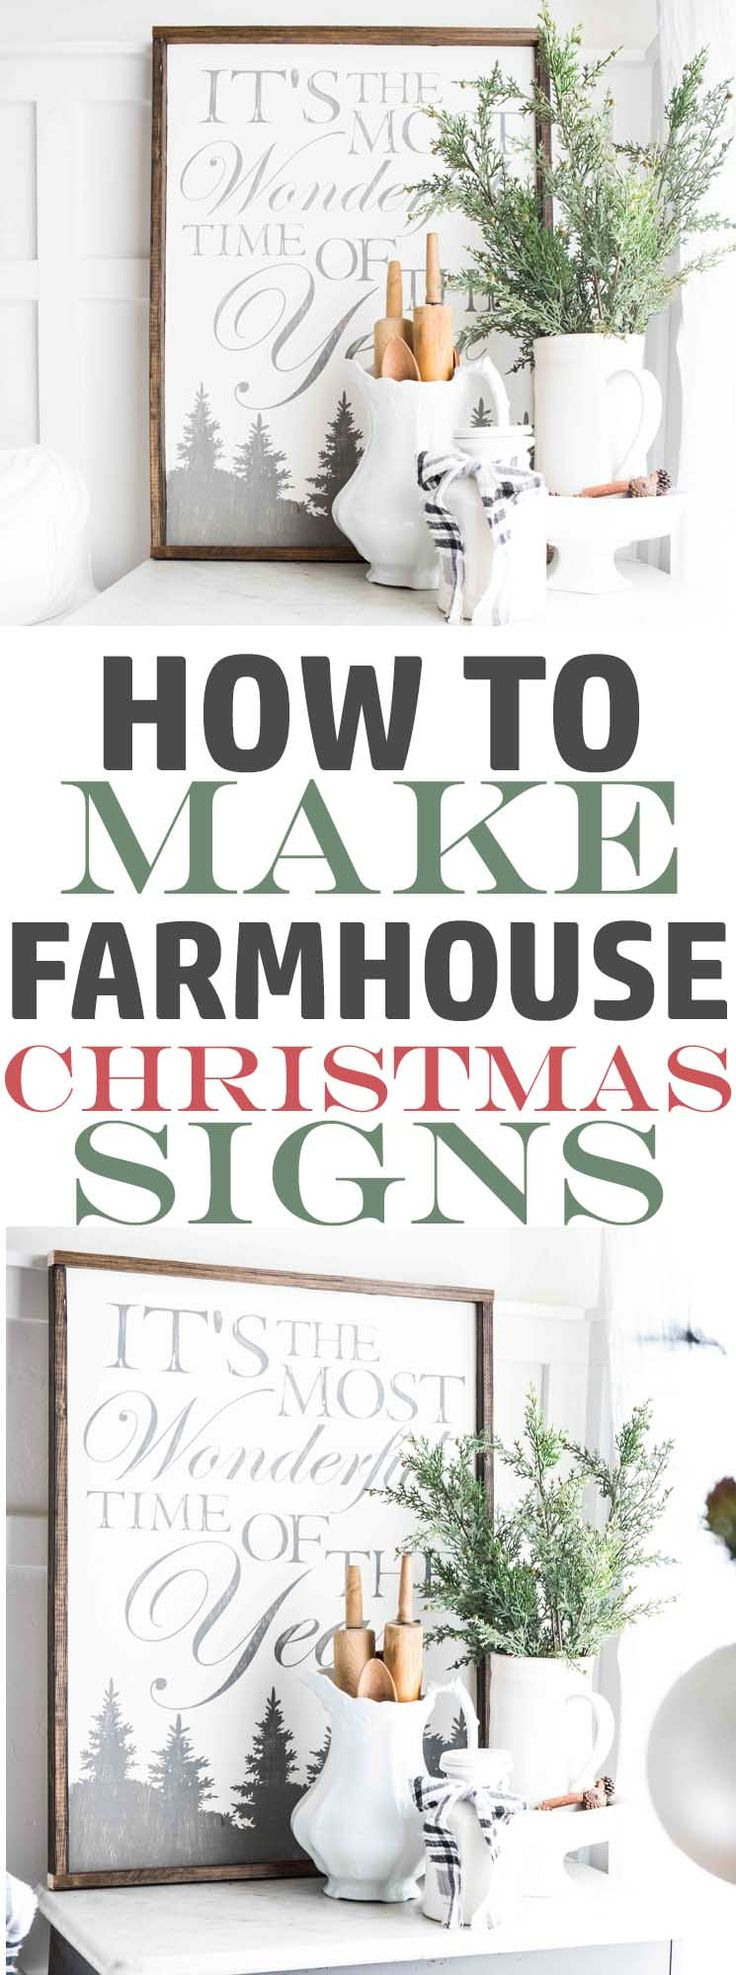 How to make Farmhouse Christmas Sign-How to make painted wood signs-www.themountainviewcottage.net.jpg